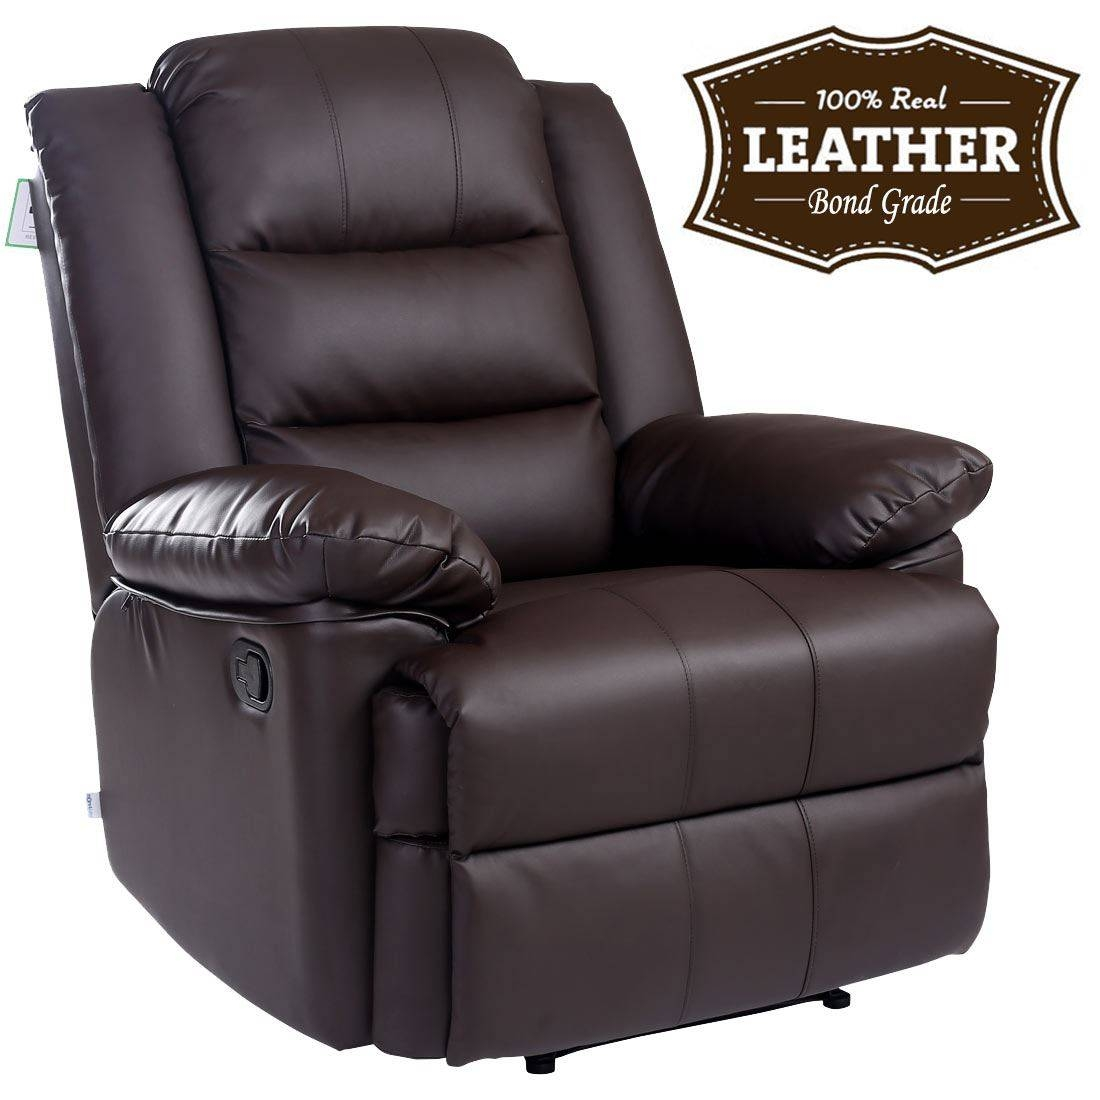 Loxley Leather Recliner Armchair Sofa Home Lounge Chair Reclining intended for Gaming Sofa Chairs (Image 14 of 15)